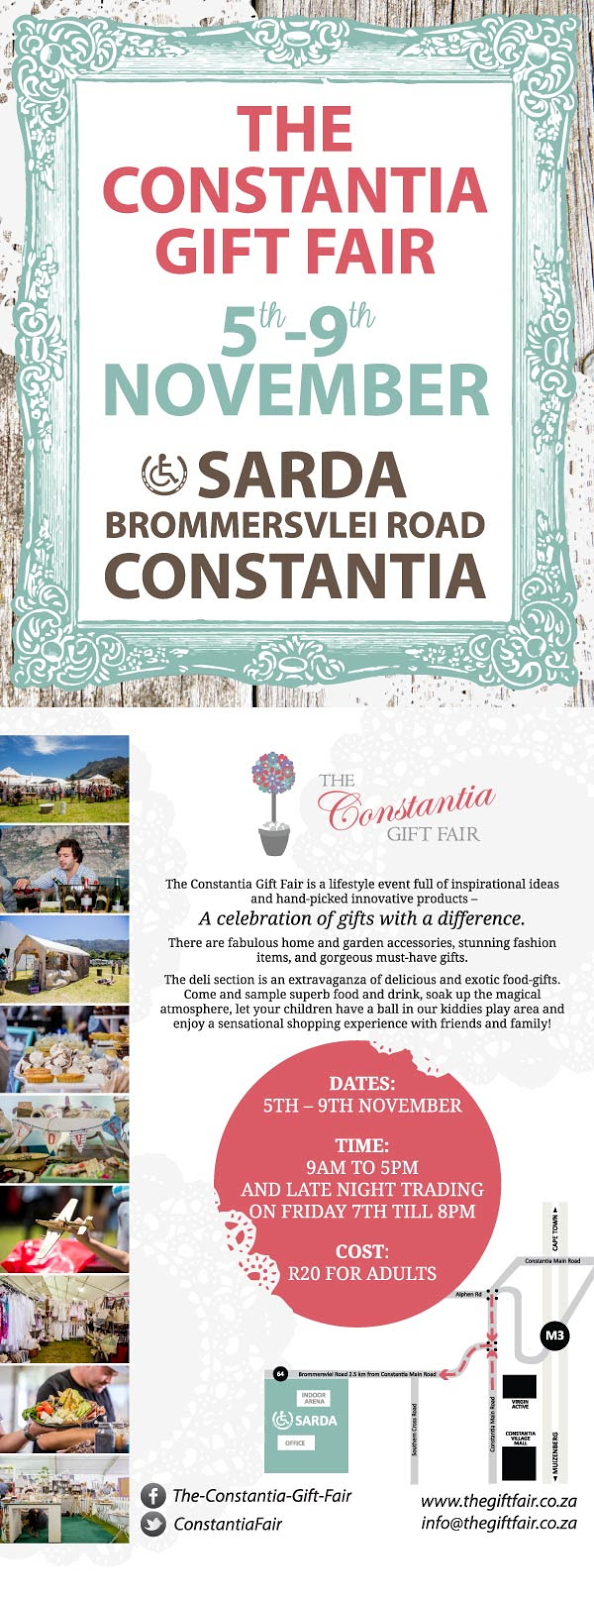 The Constantia Gif Fair